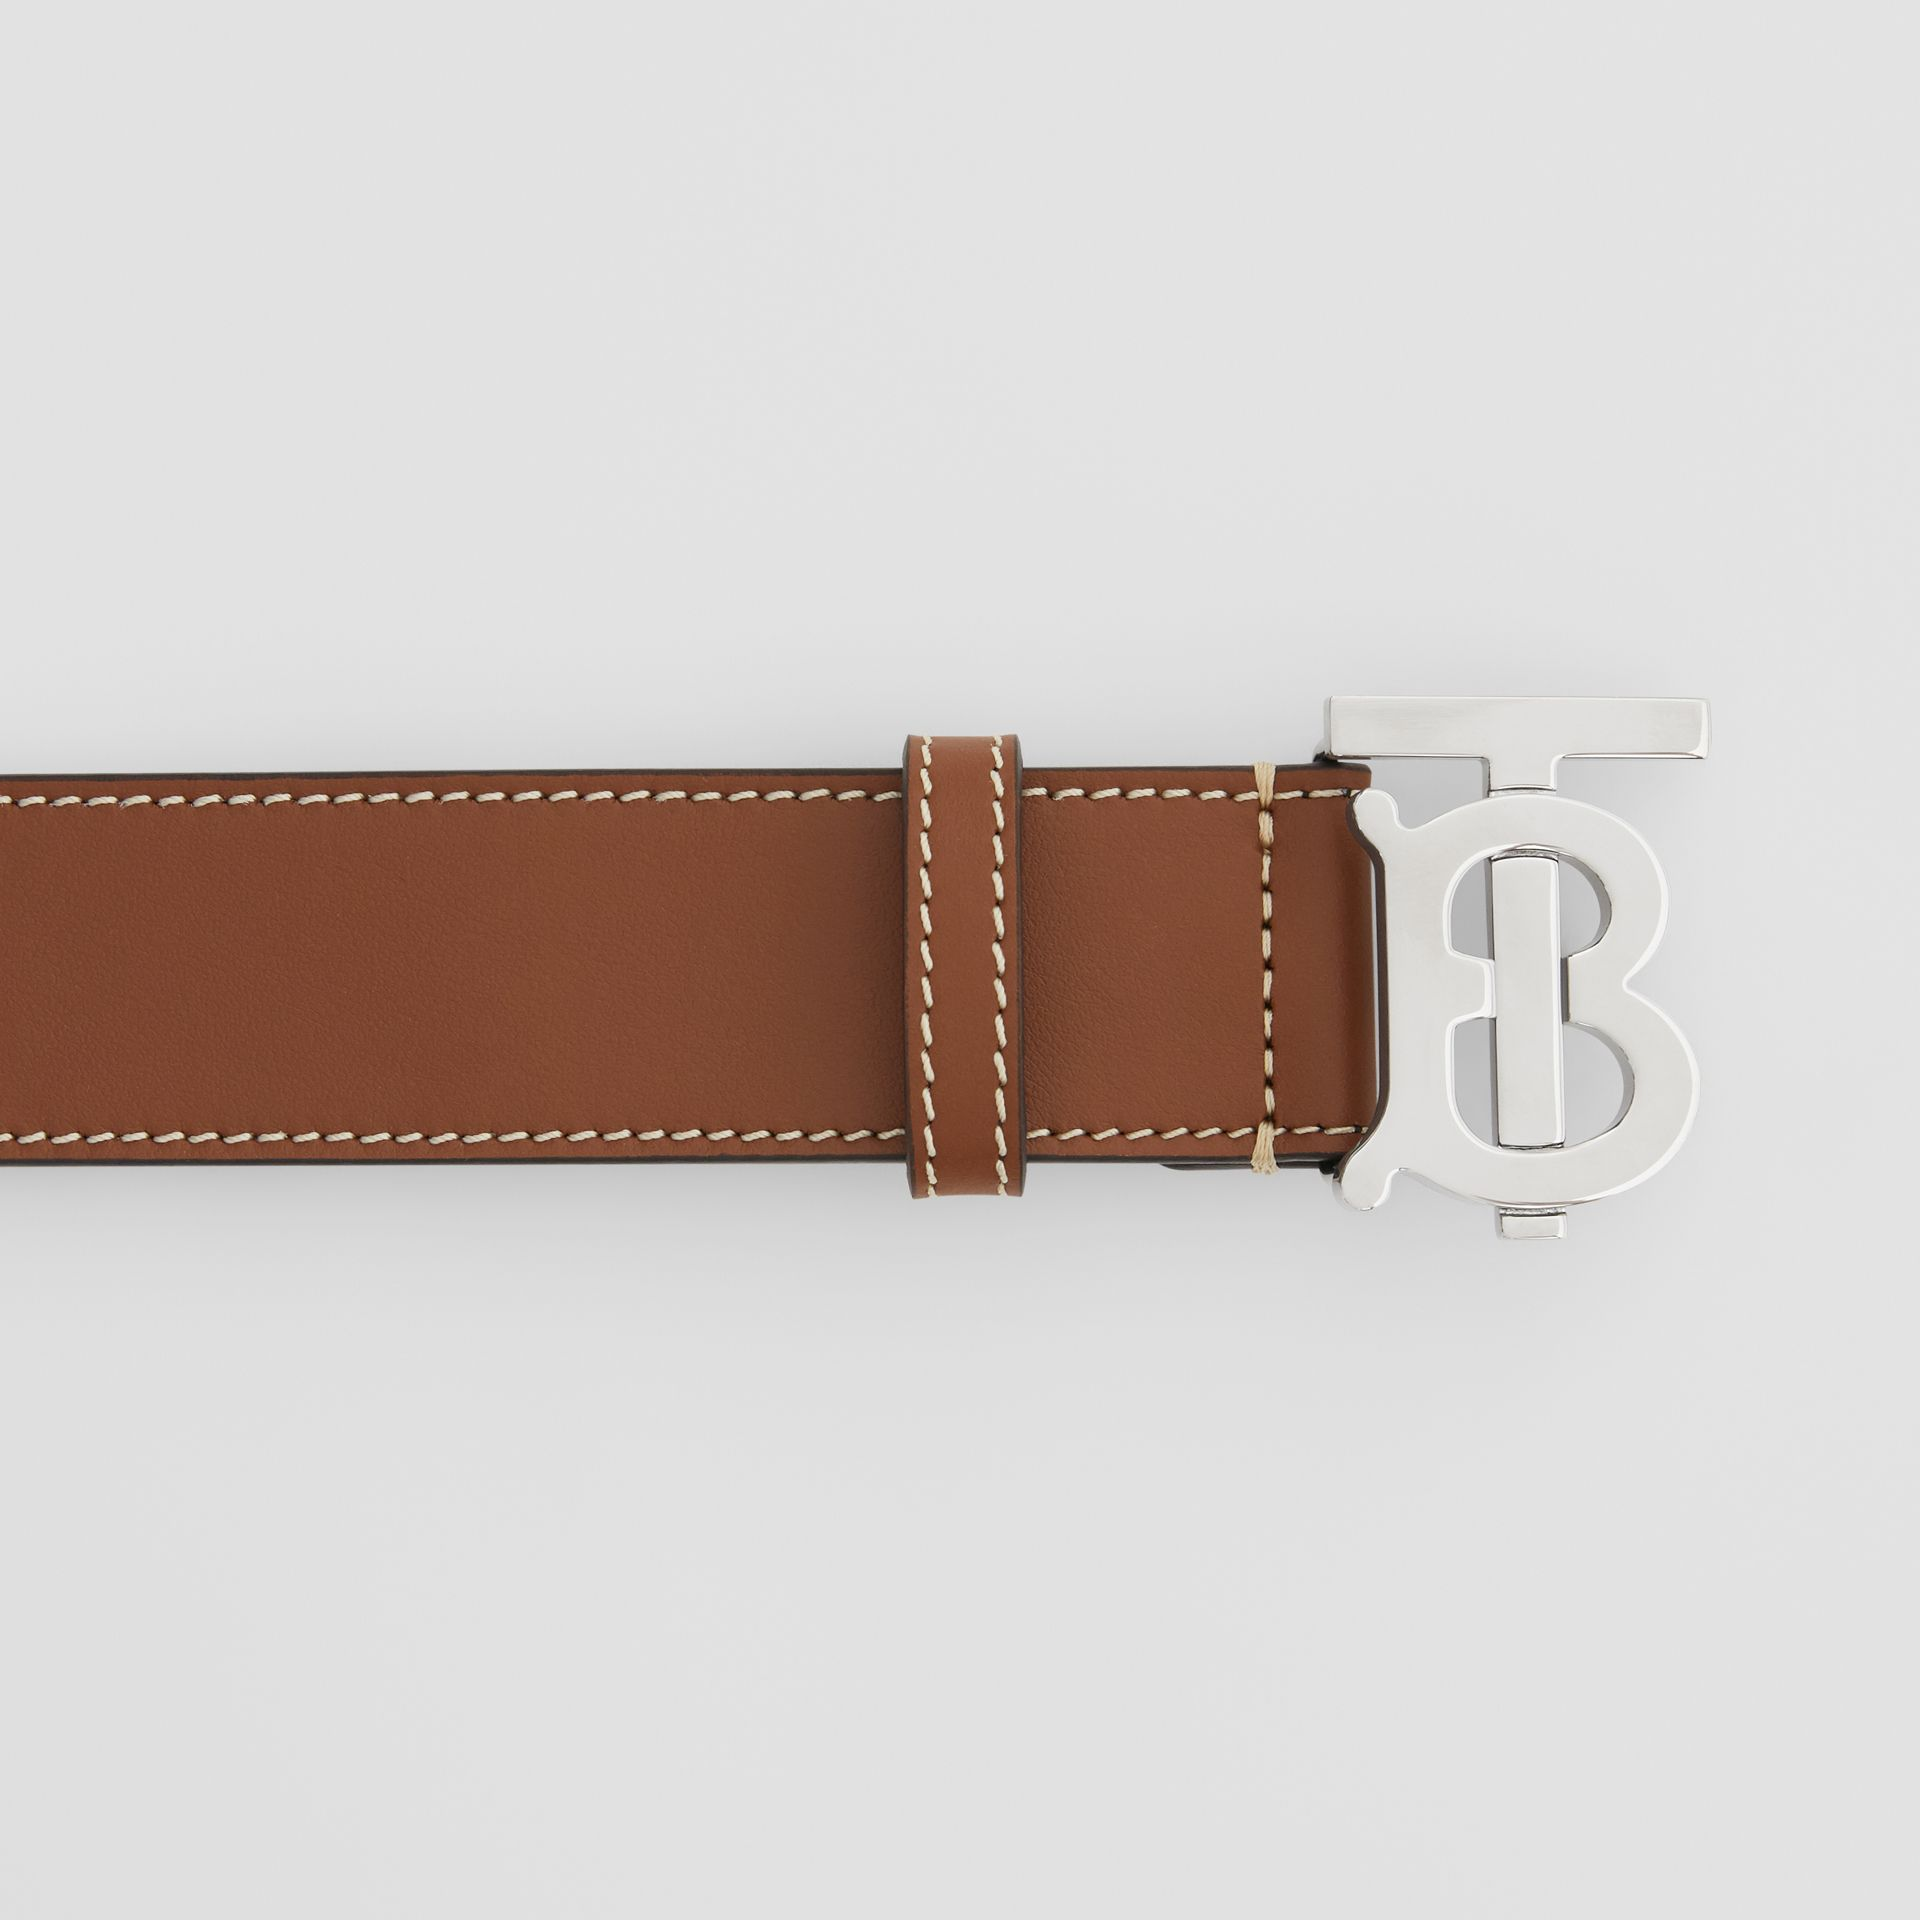 Monogram Motif Topstitched Leather Belt in Tan - Men | Burberry - gallery image 1